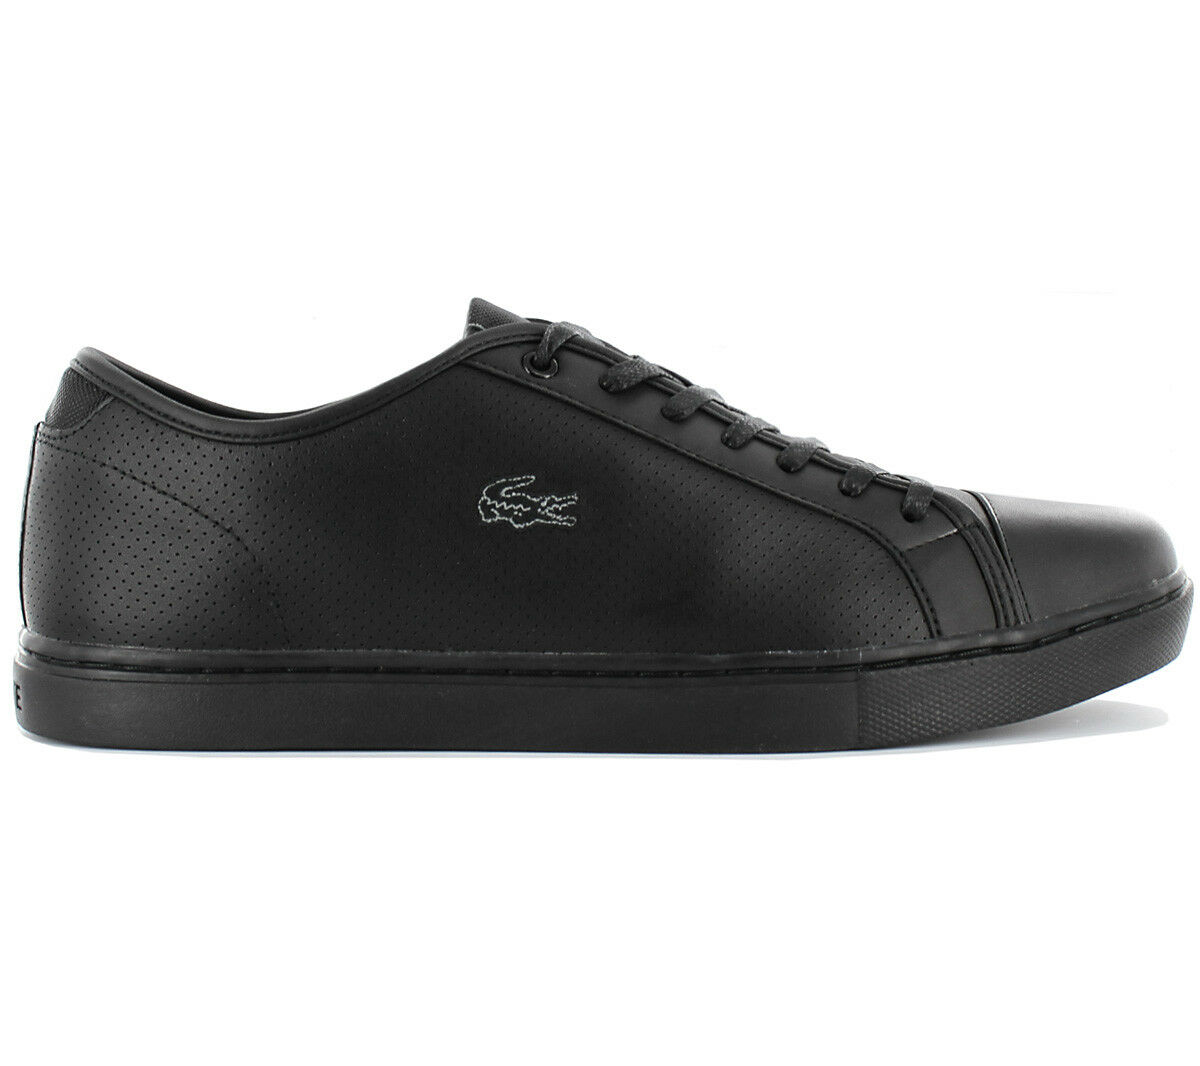 Lacoste Showcourt Ctr Spm Mens Sneakers Leather shoes Carnaby 28spm022802h New